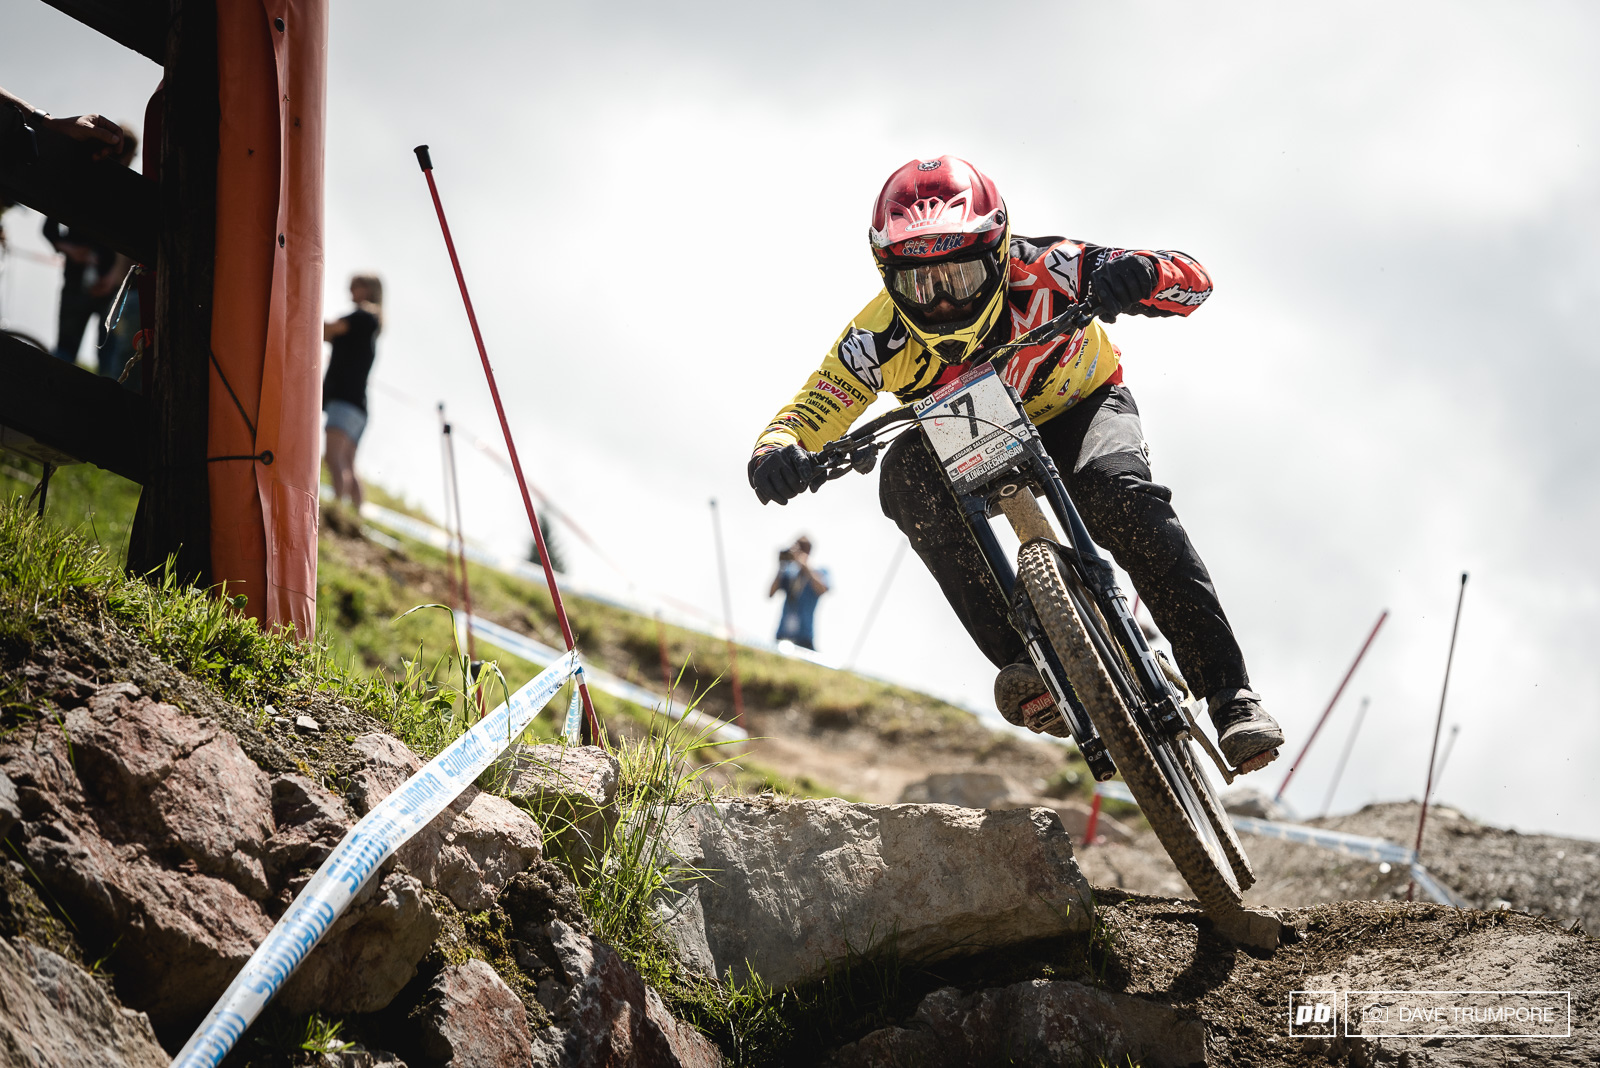 Mick Hannah hasn t raced here since 2013 due to injuries but if you look back through the results you ll see he took 3rd that year. With a fourth in timed training he looks to be on pace once again in Leogang.